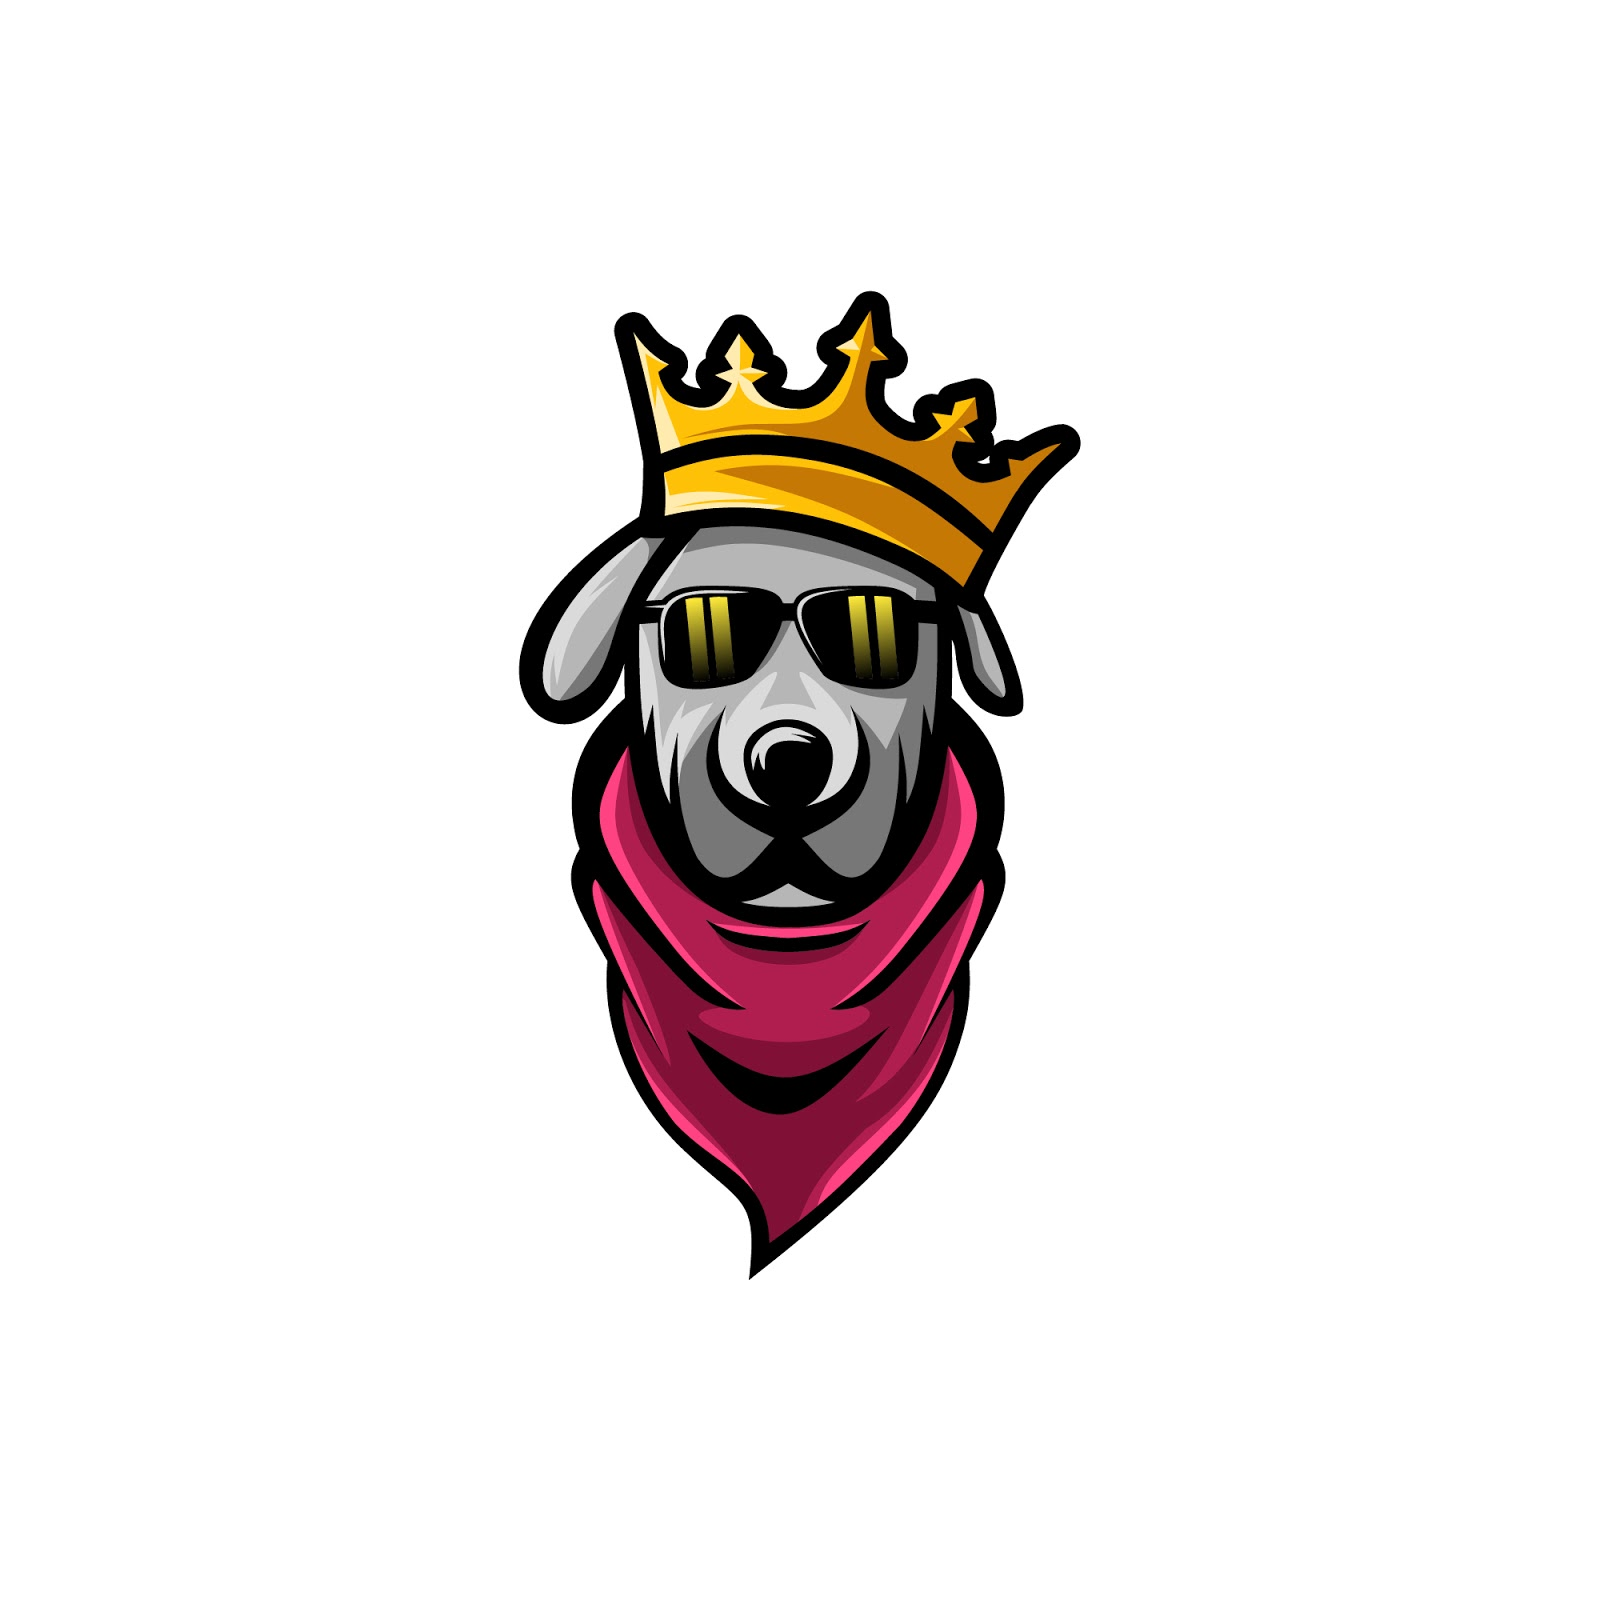 King Dog Simple Premium Vector Free Download Vector CDR, AI, EPS and PNG Formats